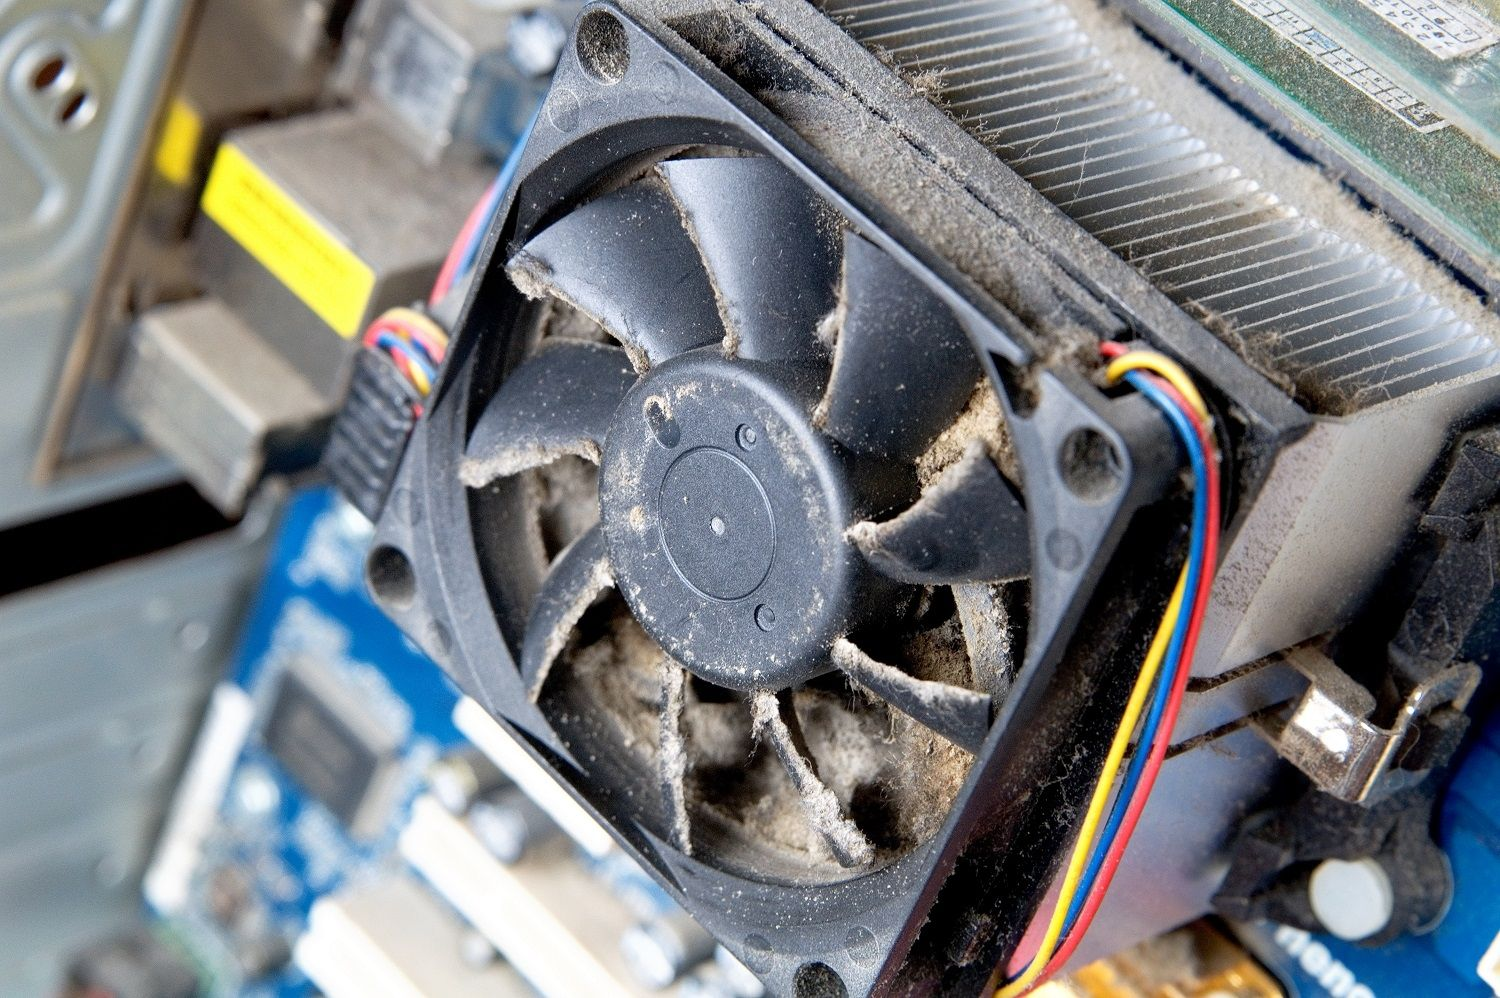 A dirty, dusty computer fan